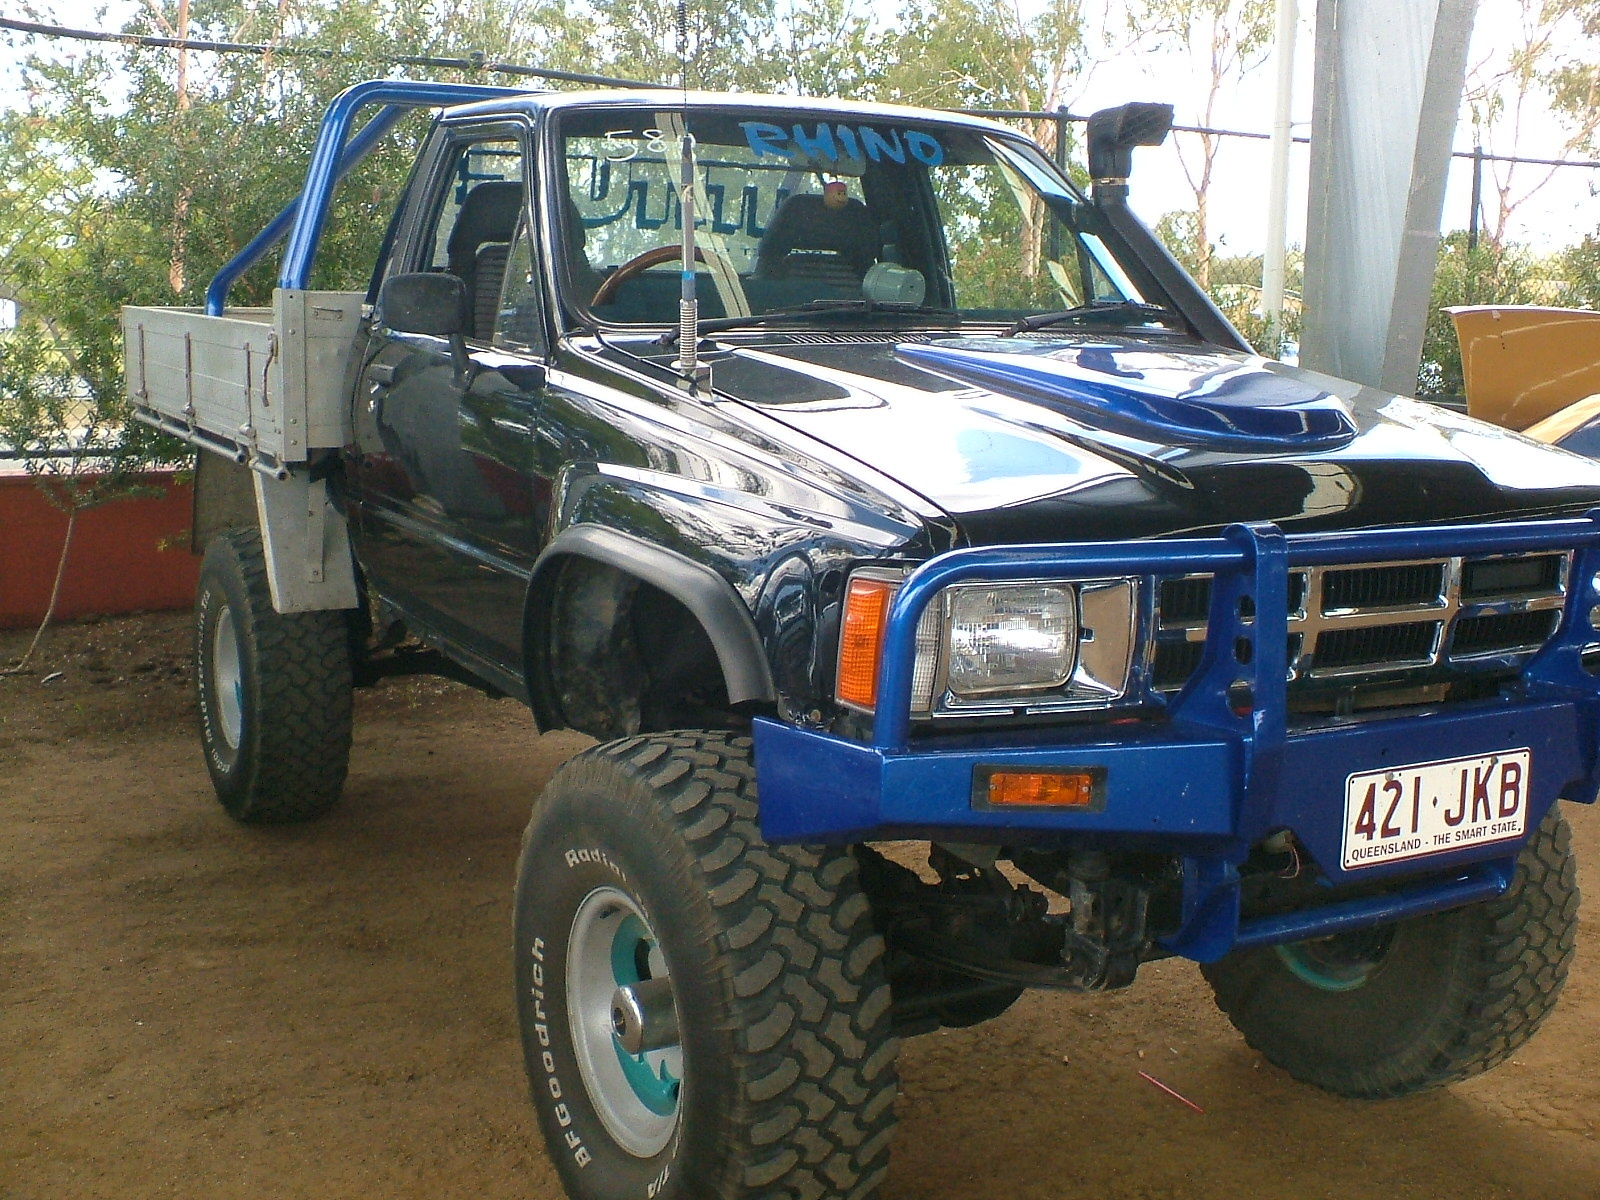 ... pic 55992 1600x1200 ford ranger questions how could i increase hp in my  2 3 l4